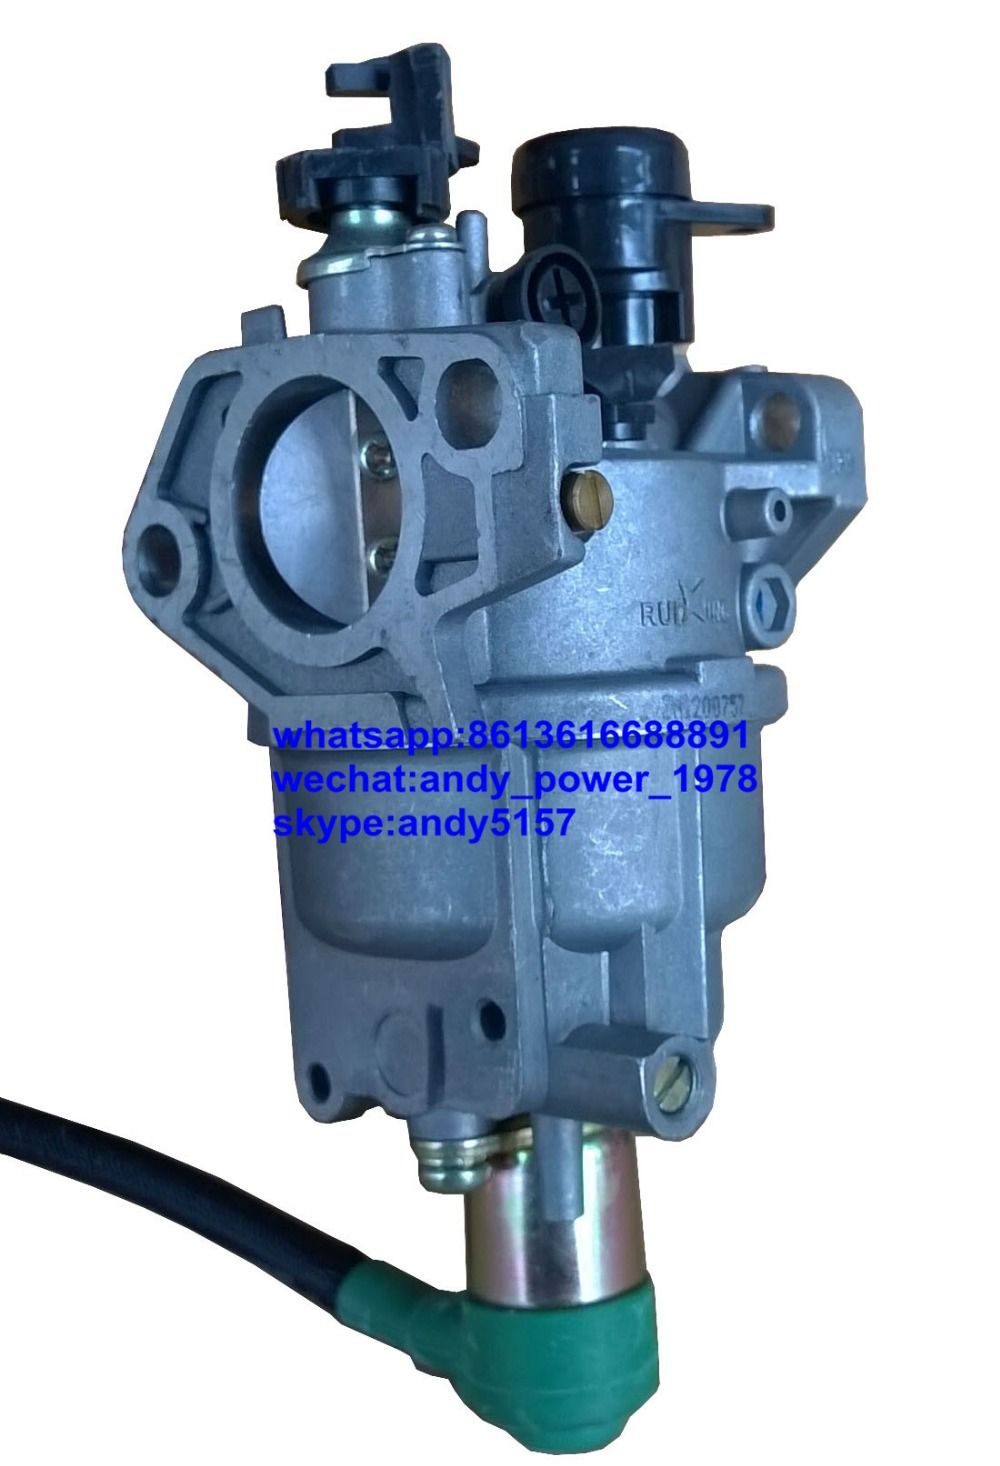 Aliexpress Com Buy 188f Generator Carburator Carburetor For 13hp Ec6500 Ec4500 Spg6500 Gx390 Engine 5kw Ec6500 Tg65 Gas Generator Generator Parts Carburetor